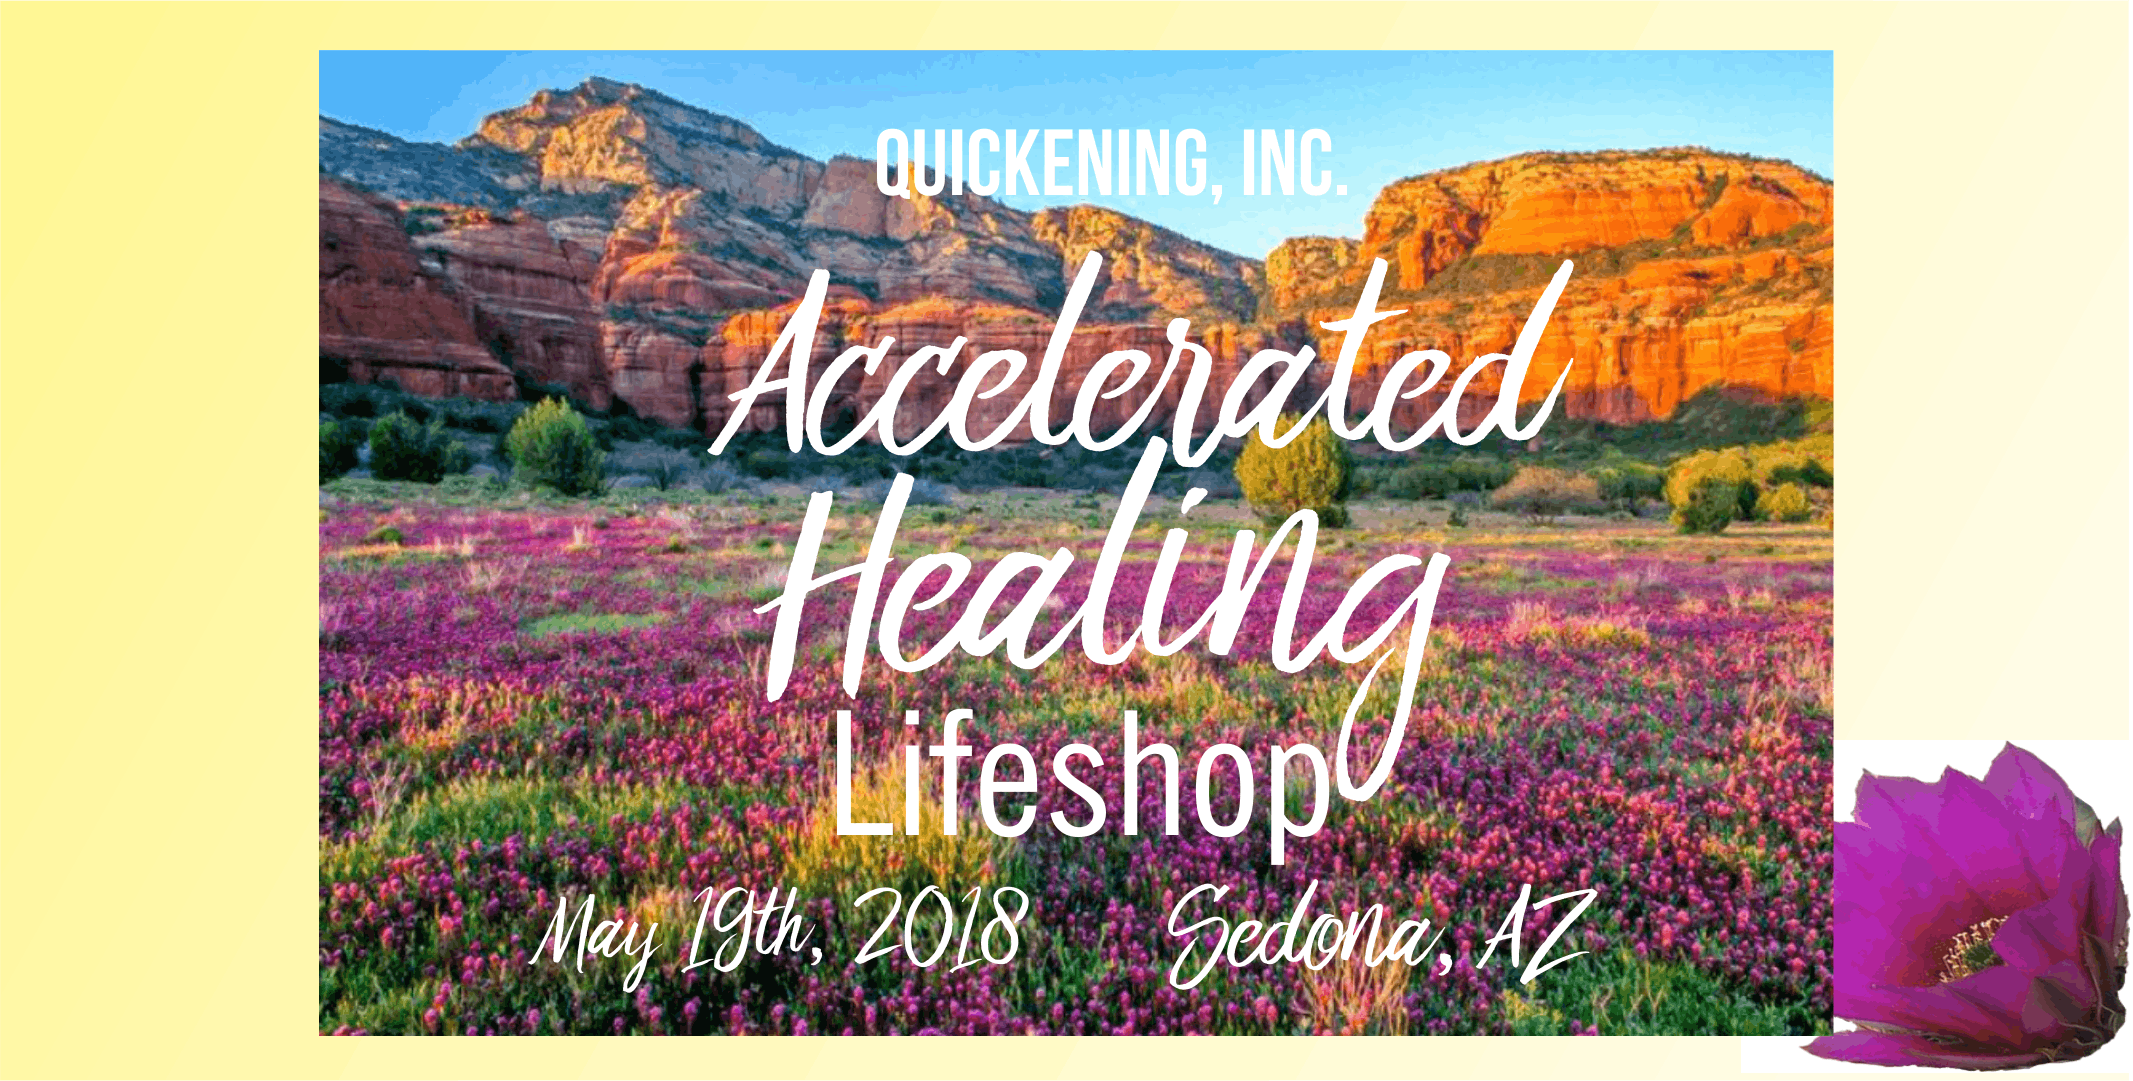 Accelerated Healing Lifeshop -By Quickening Inc.